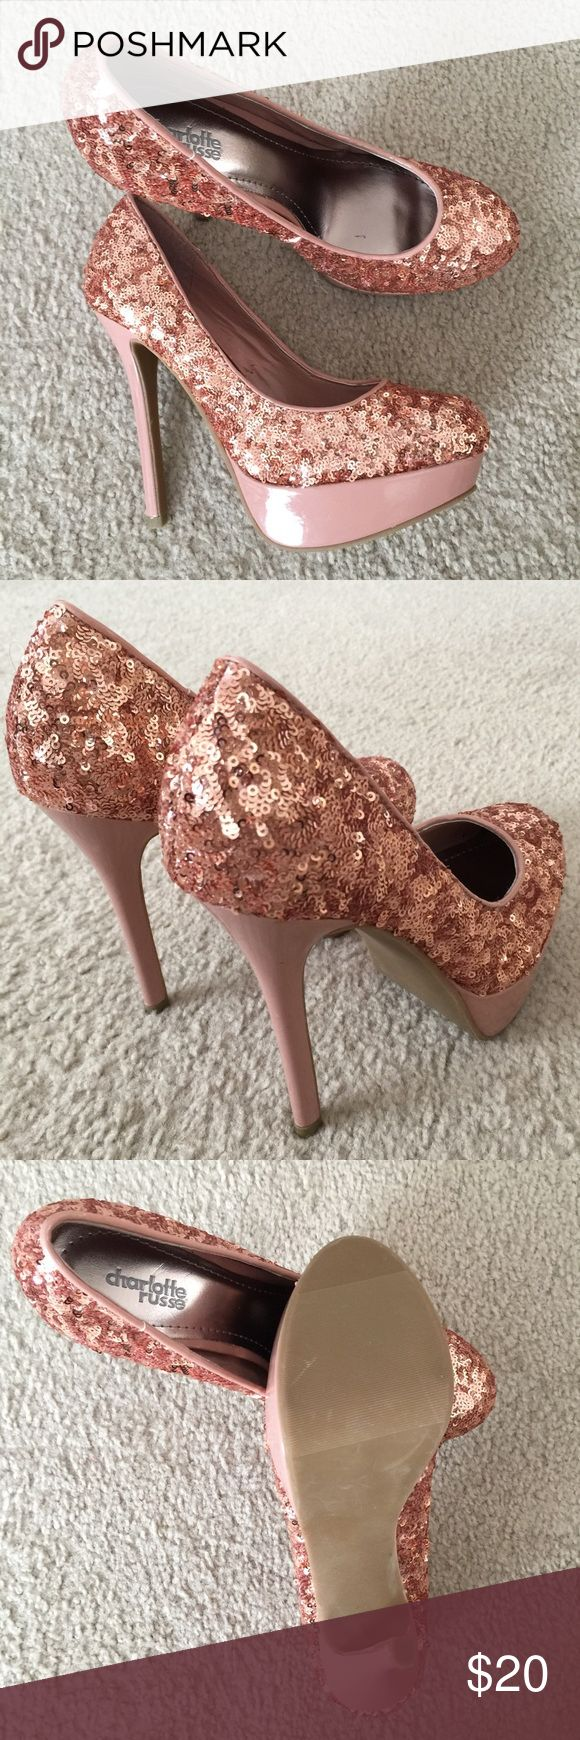 """Charlotte Russe Chunky Sequin Platform Pump Size 8 Sparkly platform pumps from Charlotte Russe! These heels are covered in rose gold sequins and have a 1.25"""" platform, and a 5"""" heel. These have hardly been worn, but they have a couple minor flaws inside-- please see pictures for details. Gorgeous shoes for wedding, prom, or a night out! 😊 Charlotte Russe Shoes Heels"""